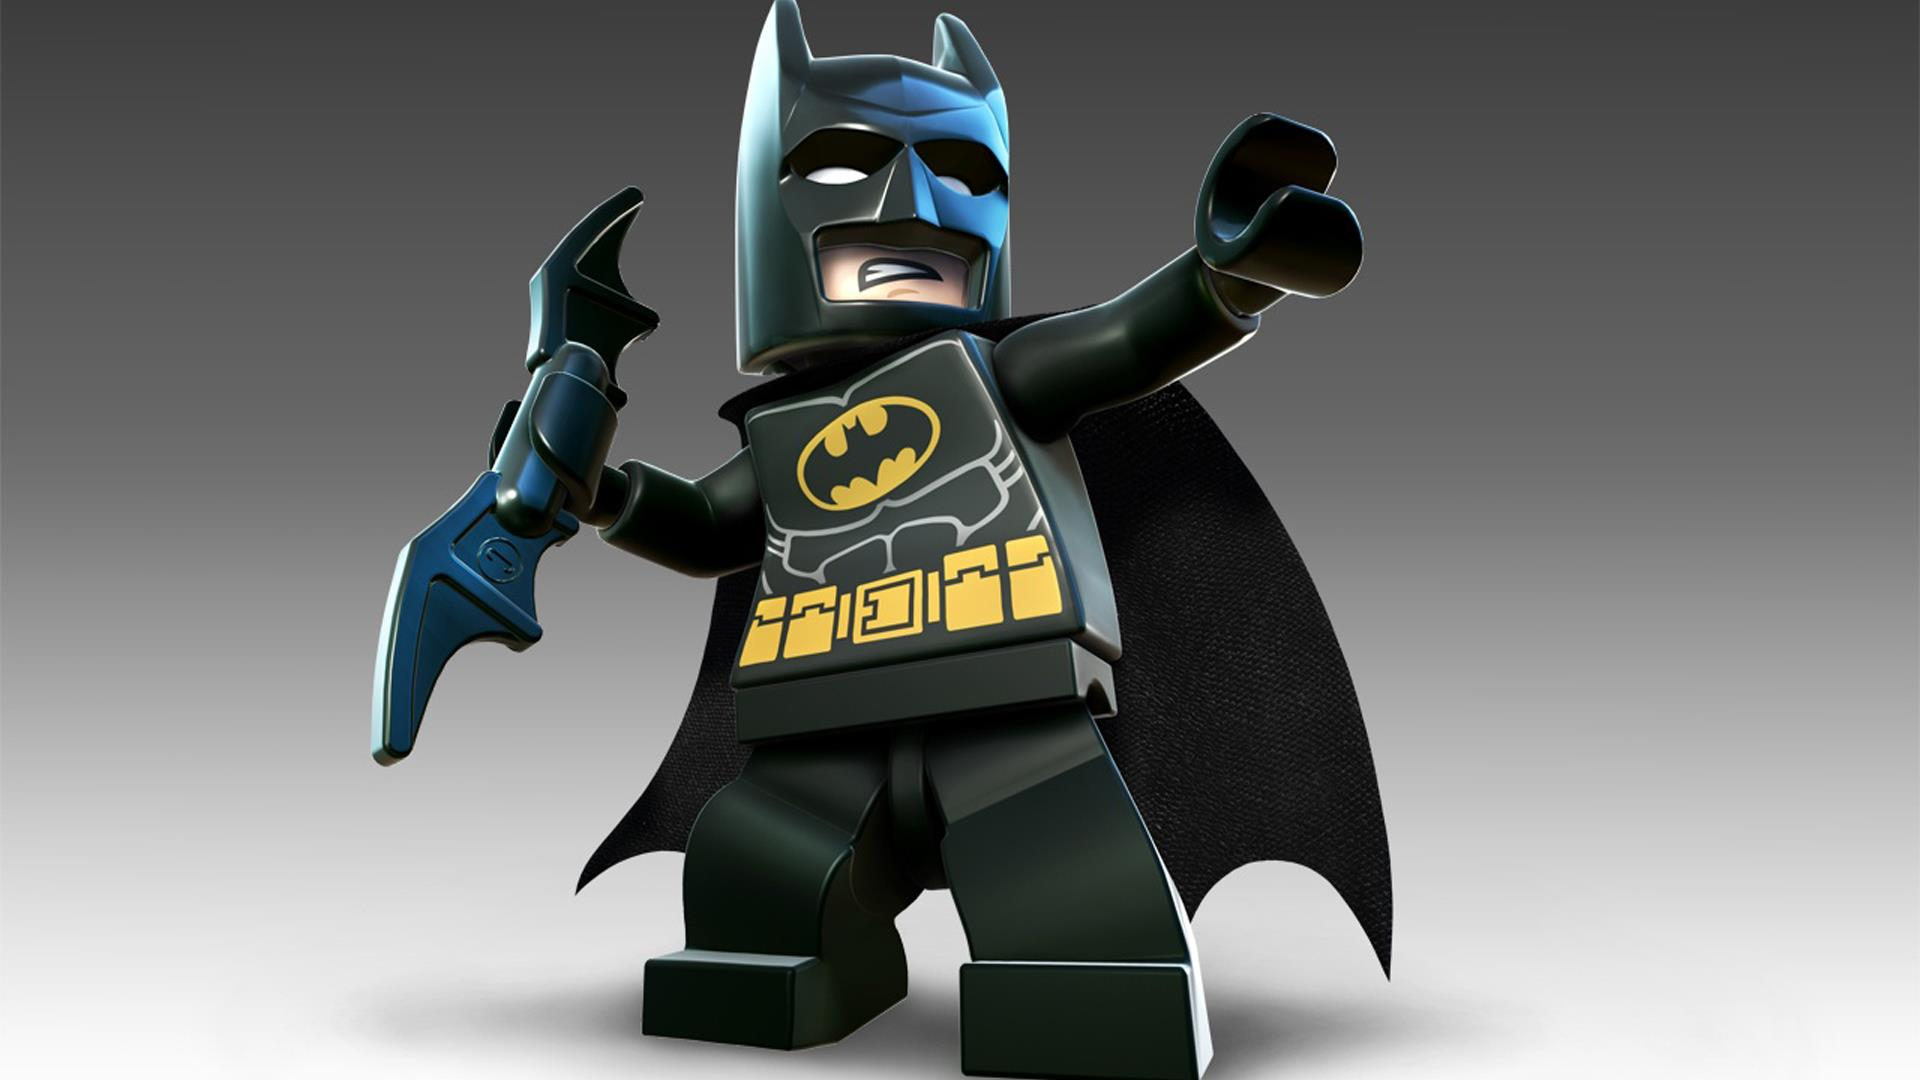 480x854 Batman Lego Android One Hd 4k Wallpapers Images